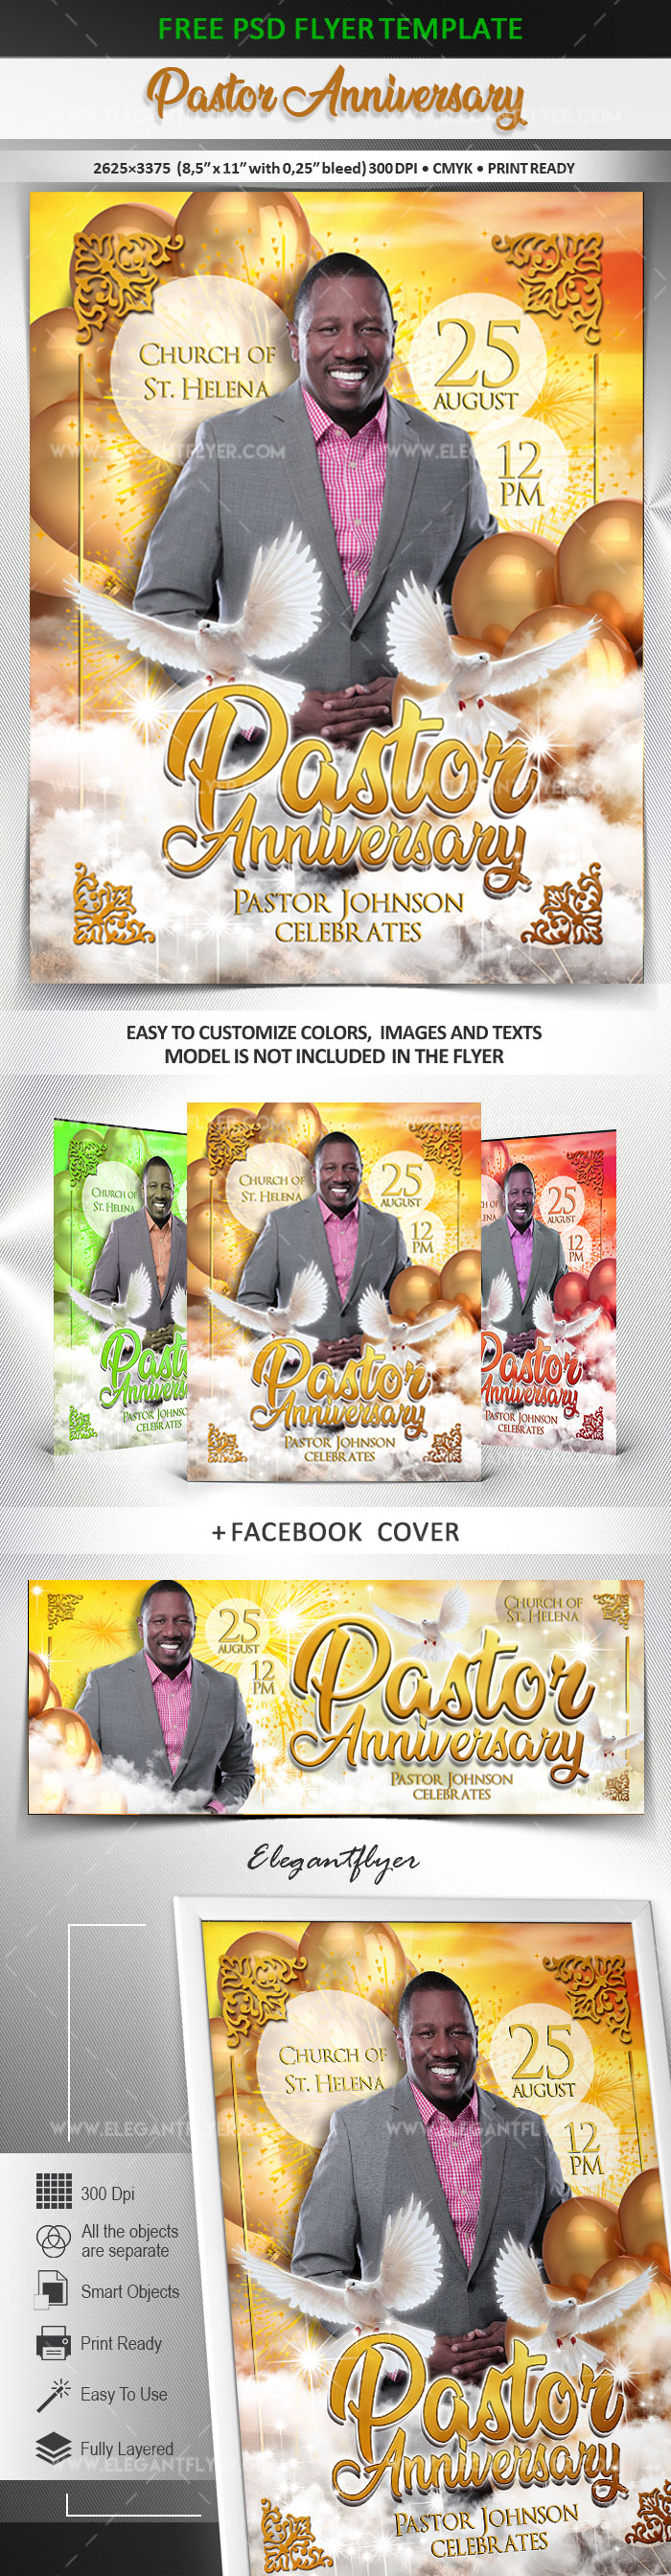 Pastor Anniversary – Free Flyer PSD Template